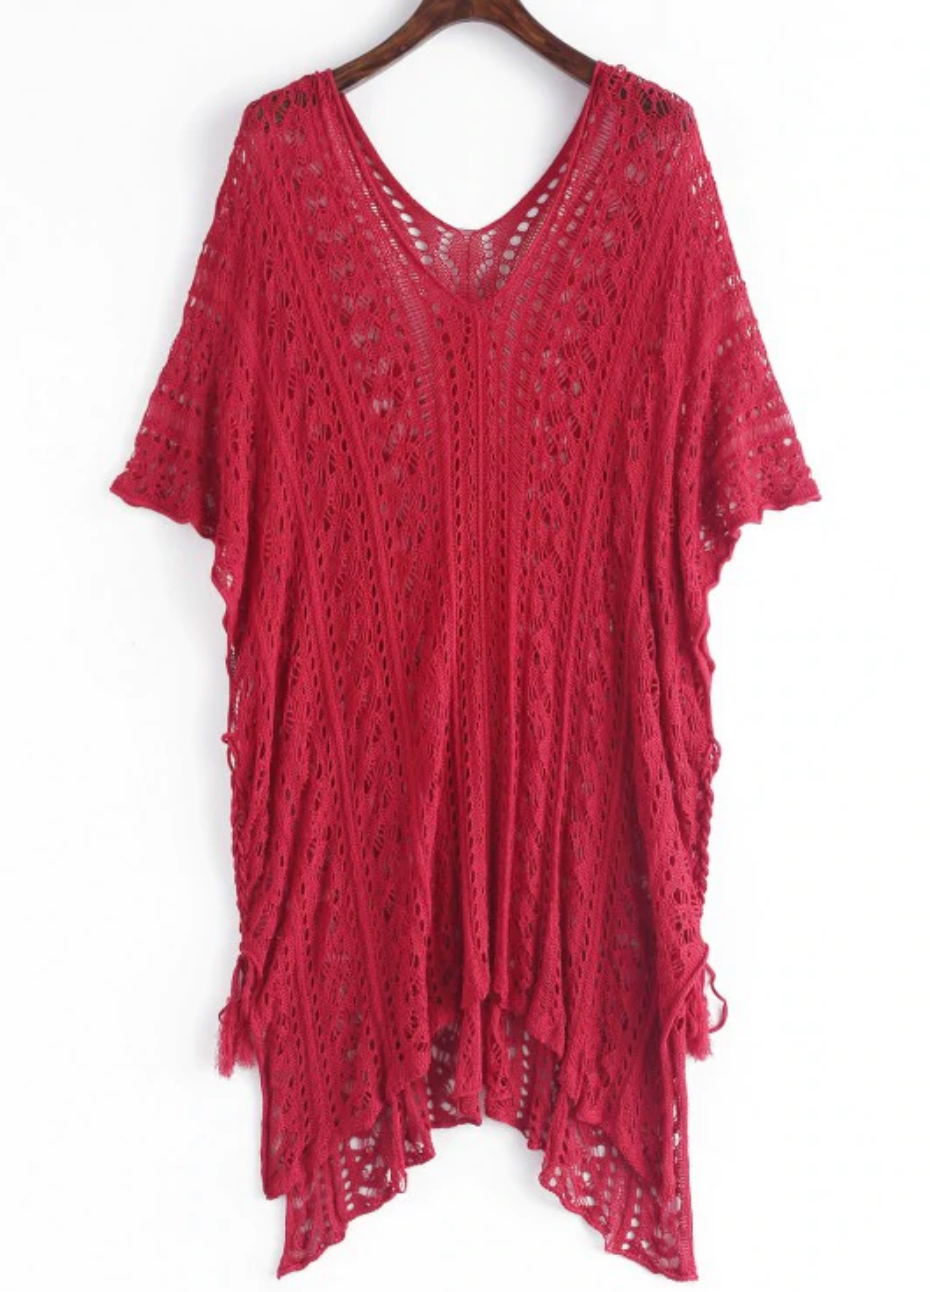 Crochet Slit Batwing Sleeve Tunic Dress - Red